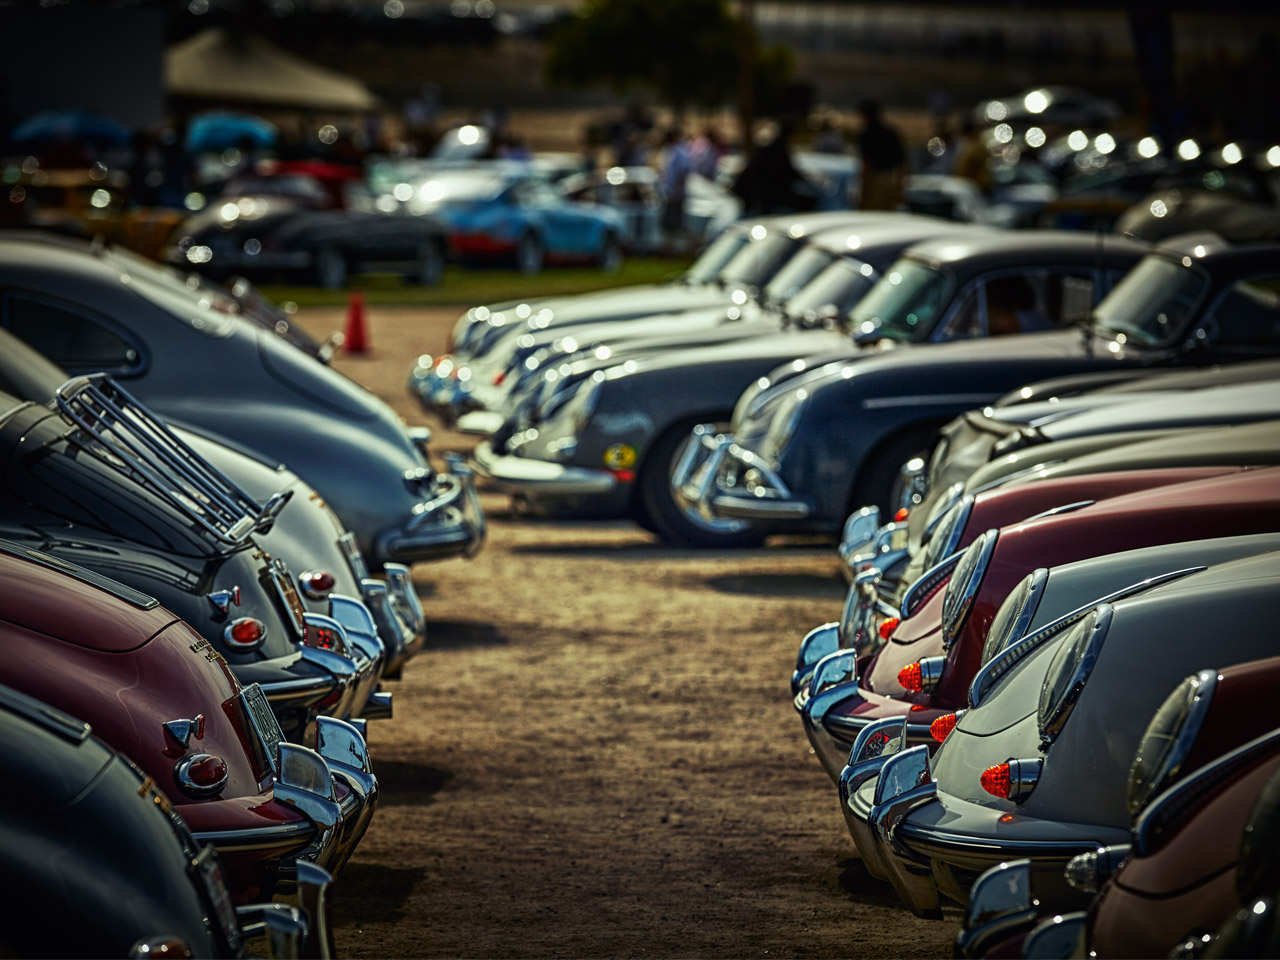 Porsche Rennsport Reunion VI: Family Reunion in California